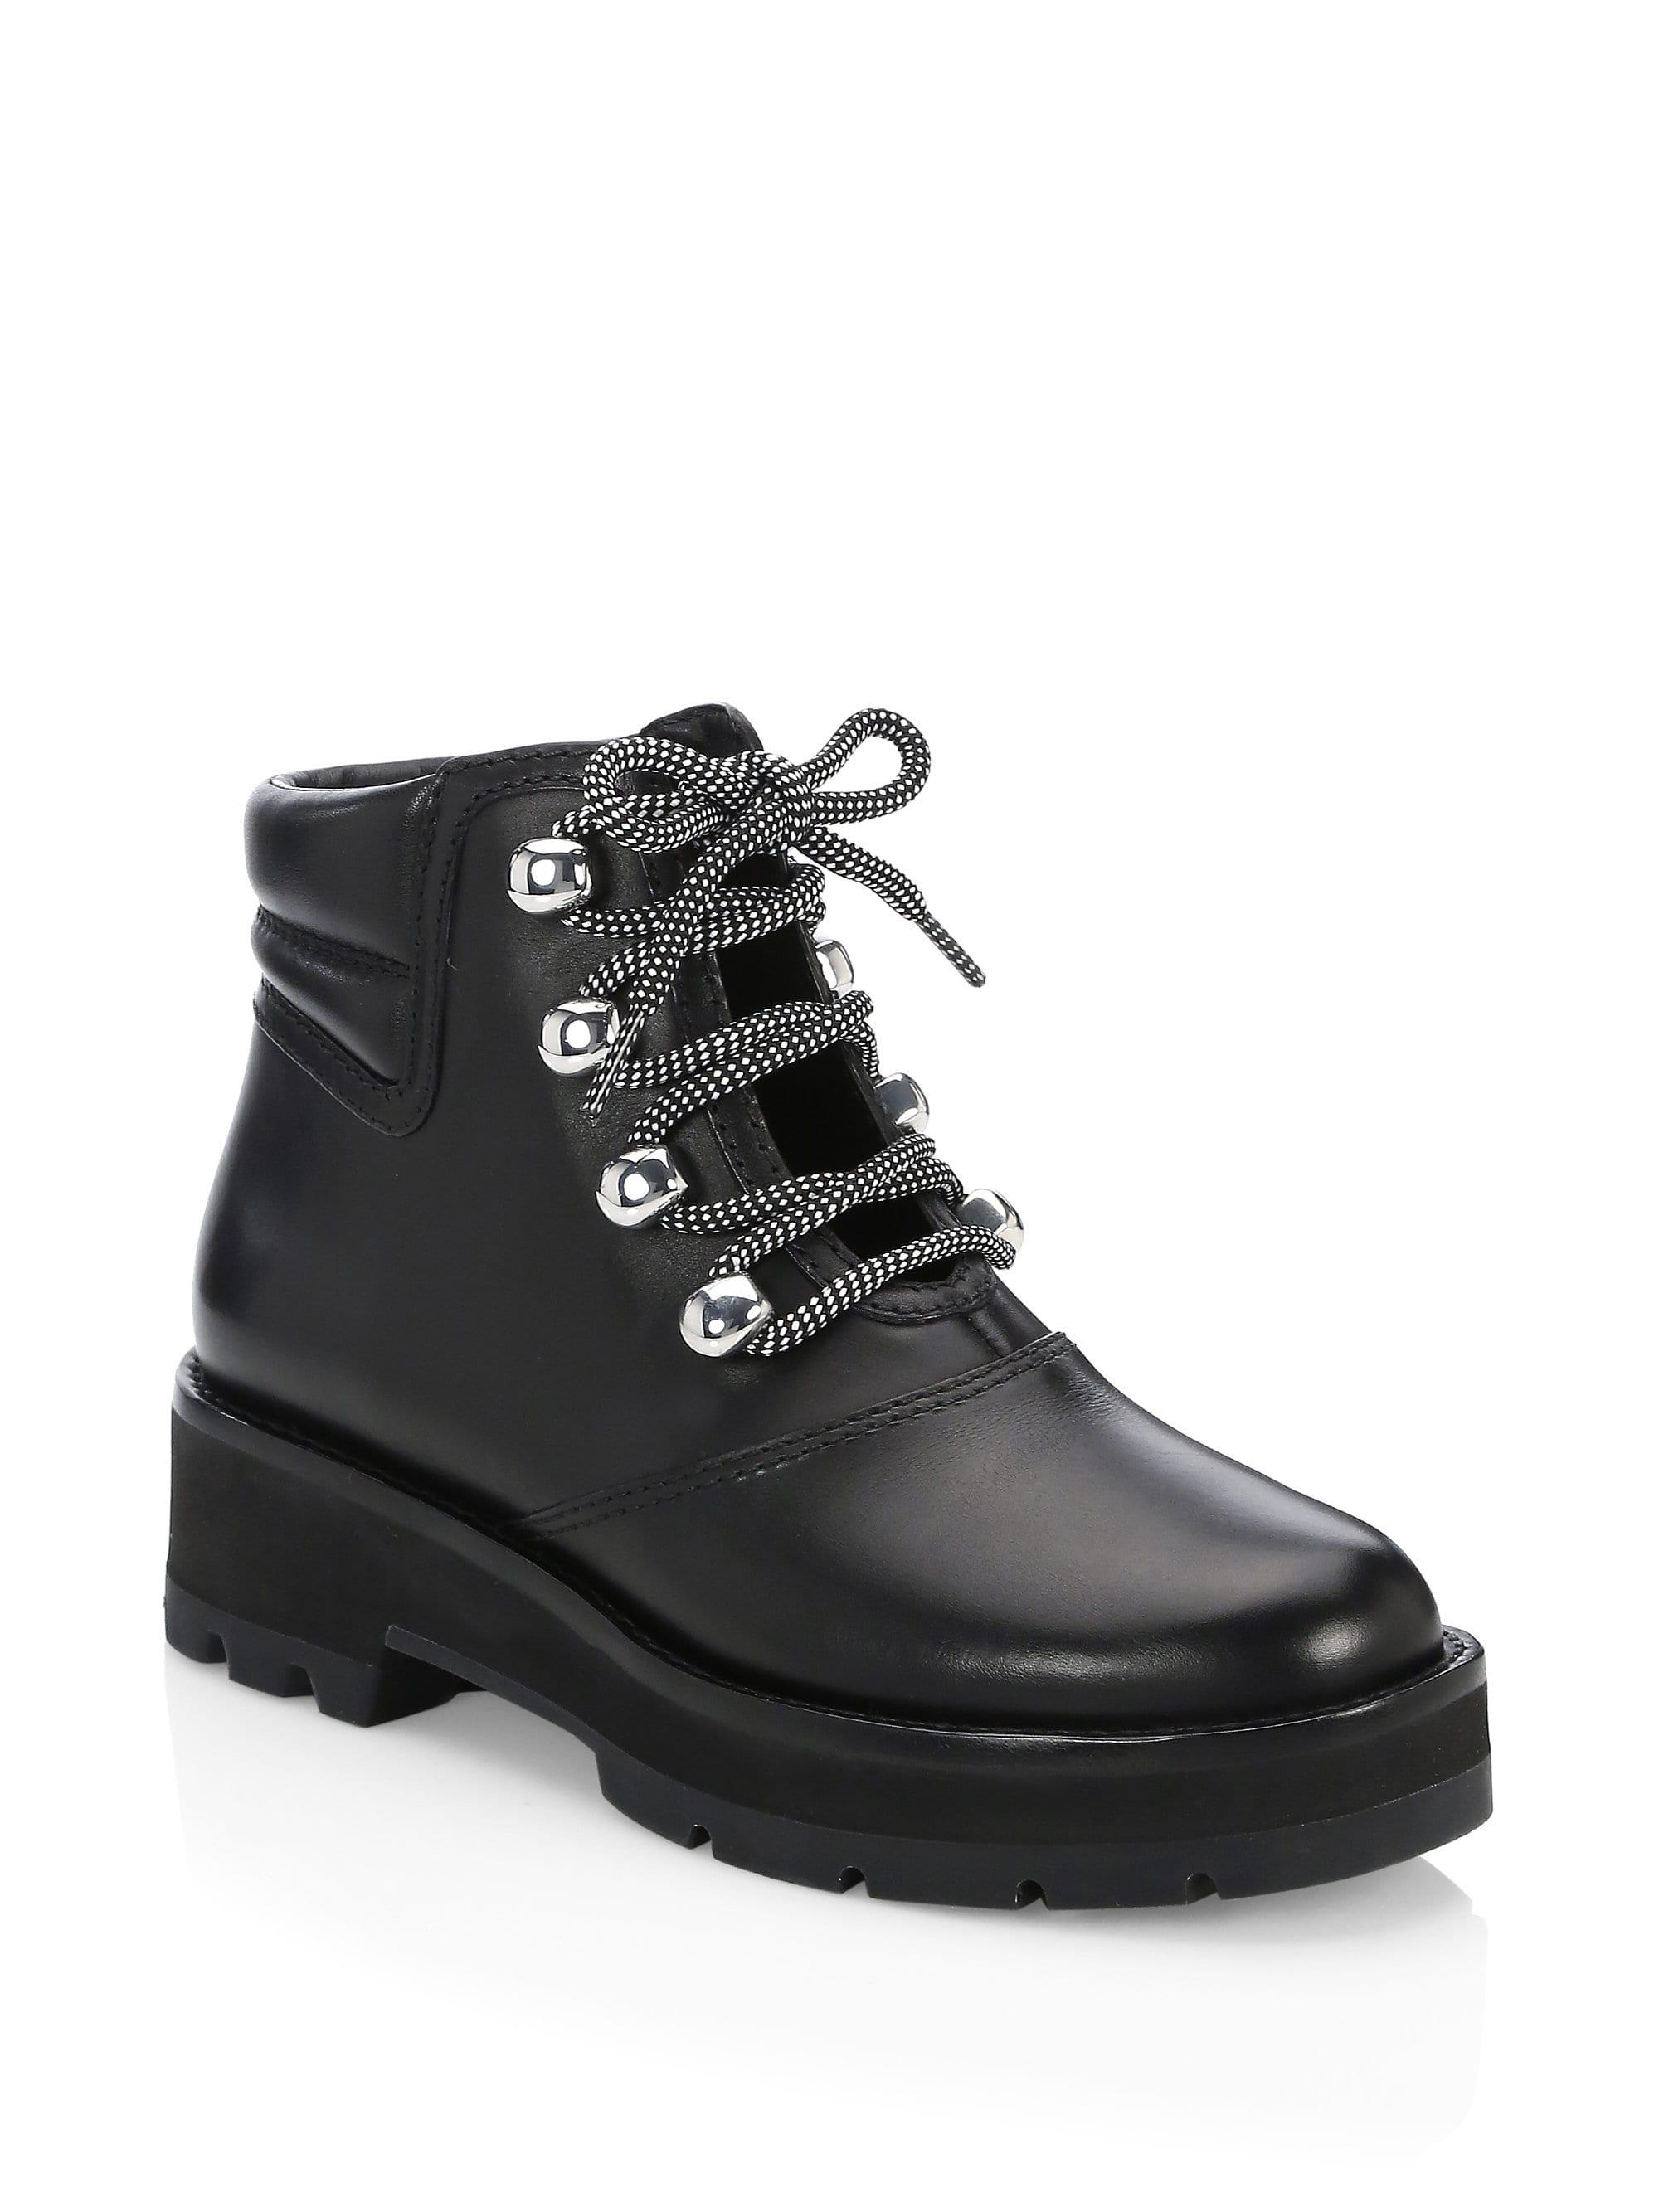 Black Dylan Hiking Boots 3.1 Phillip Lim fcswyc